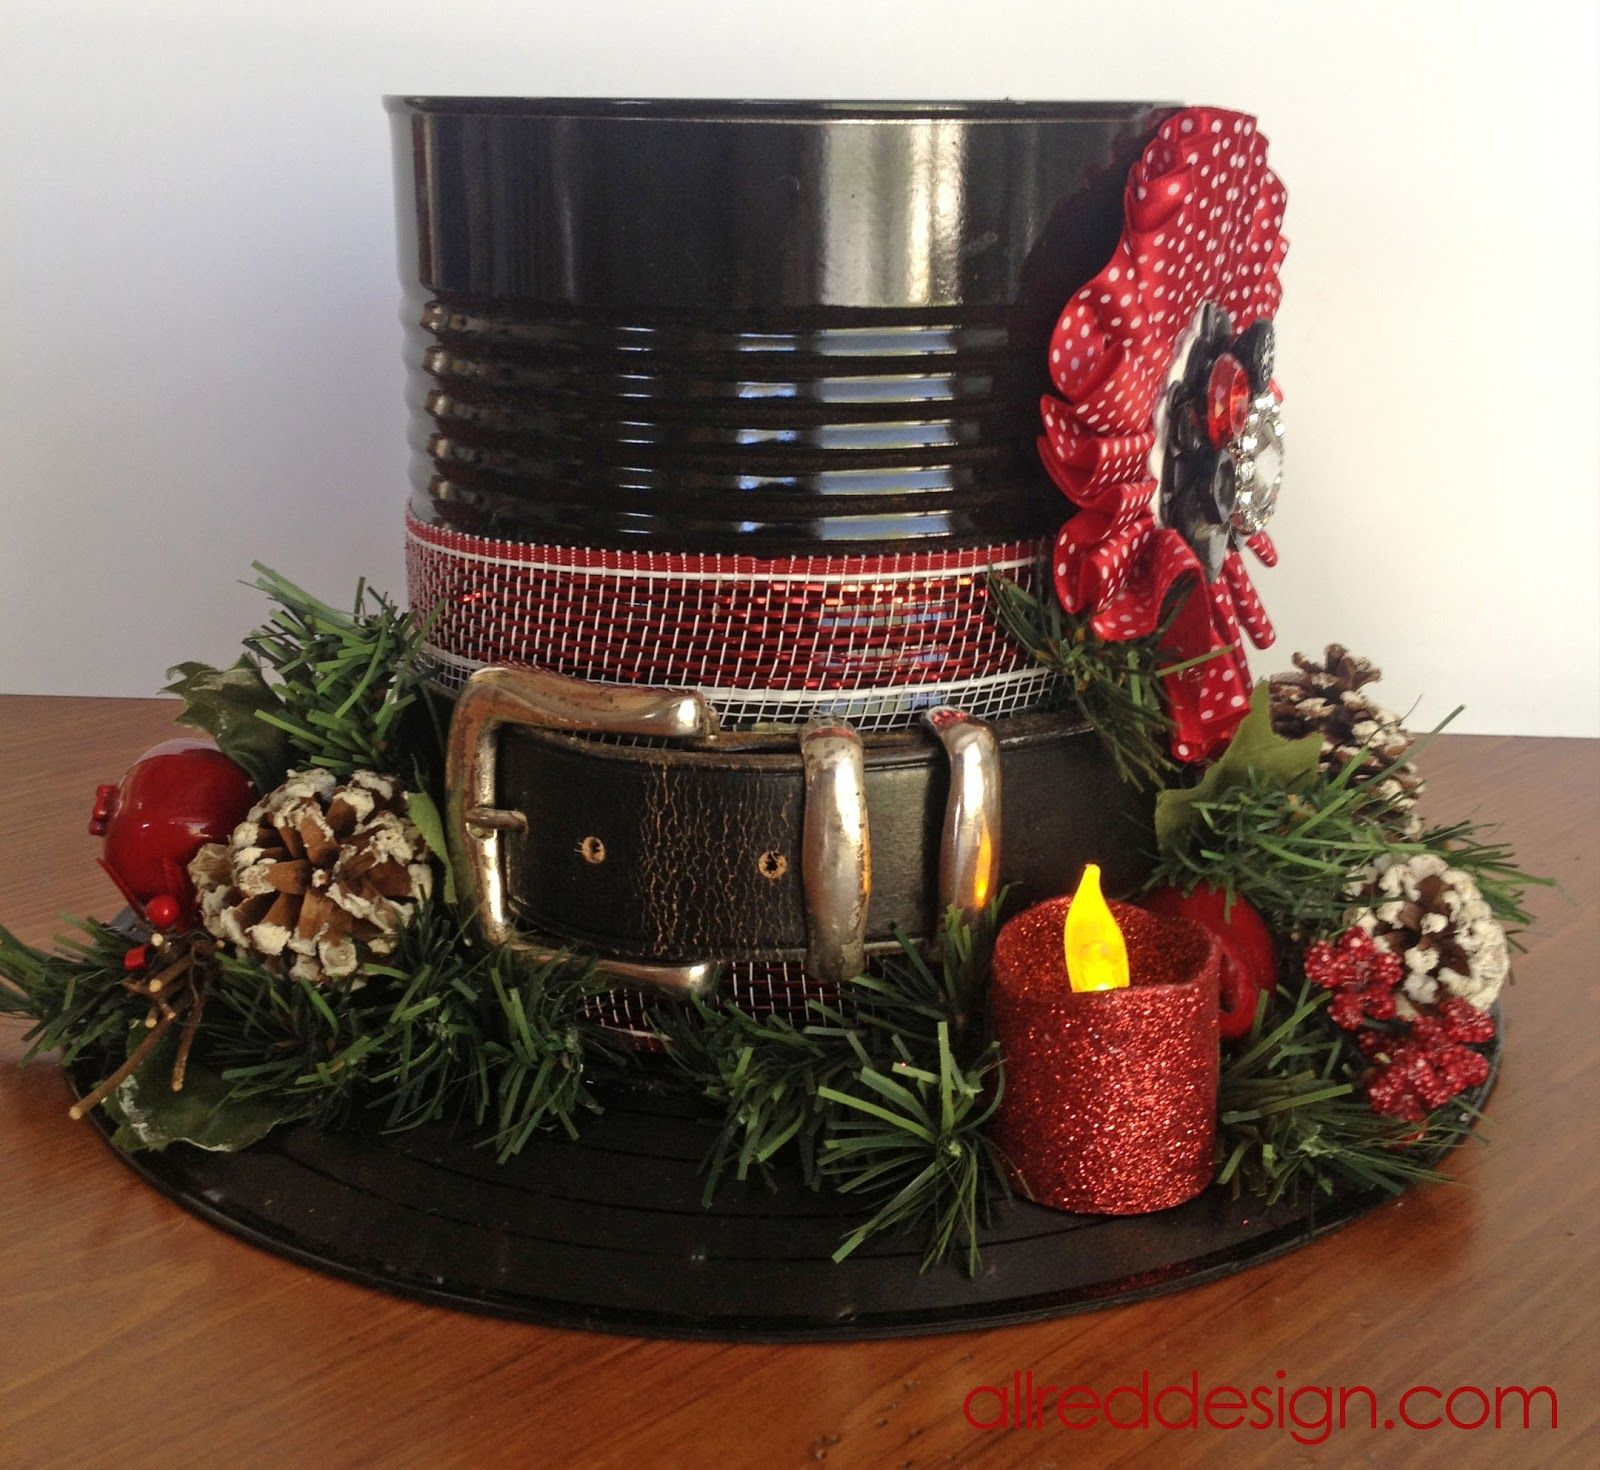 Snowman Holiday Hat Tutorial this would be fun to make